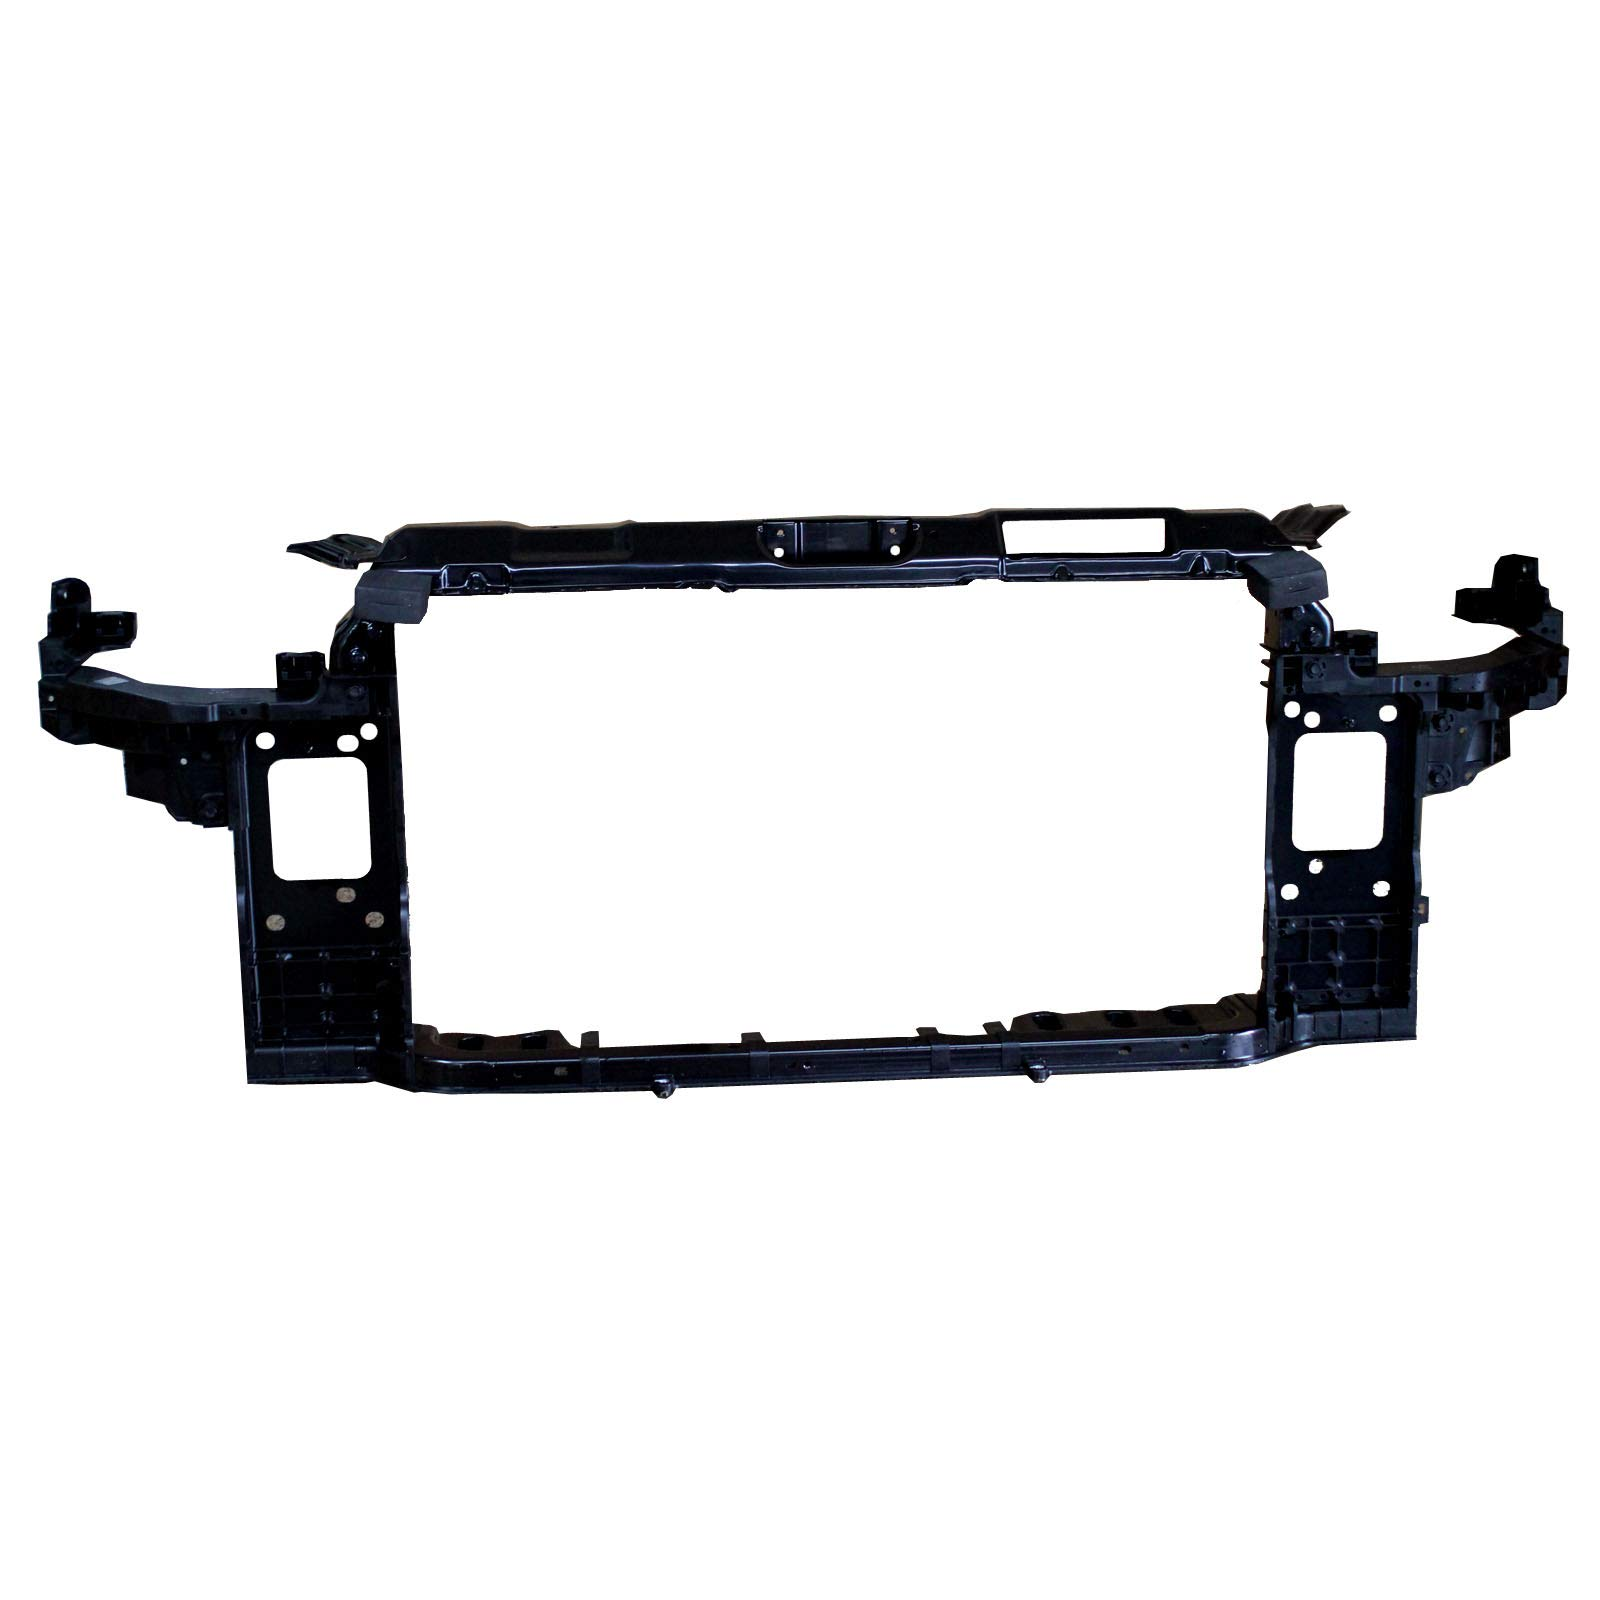 Genuine Hyundai 64101-3X002 Fender Apron and Radiator Support Panel Carrier Assembly